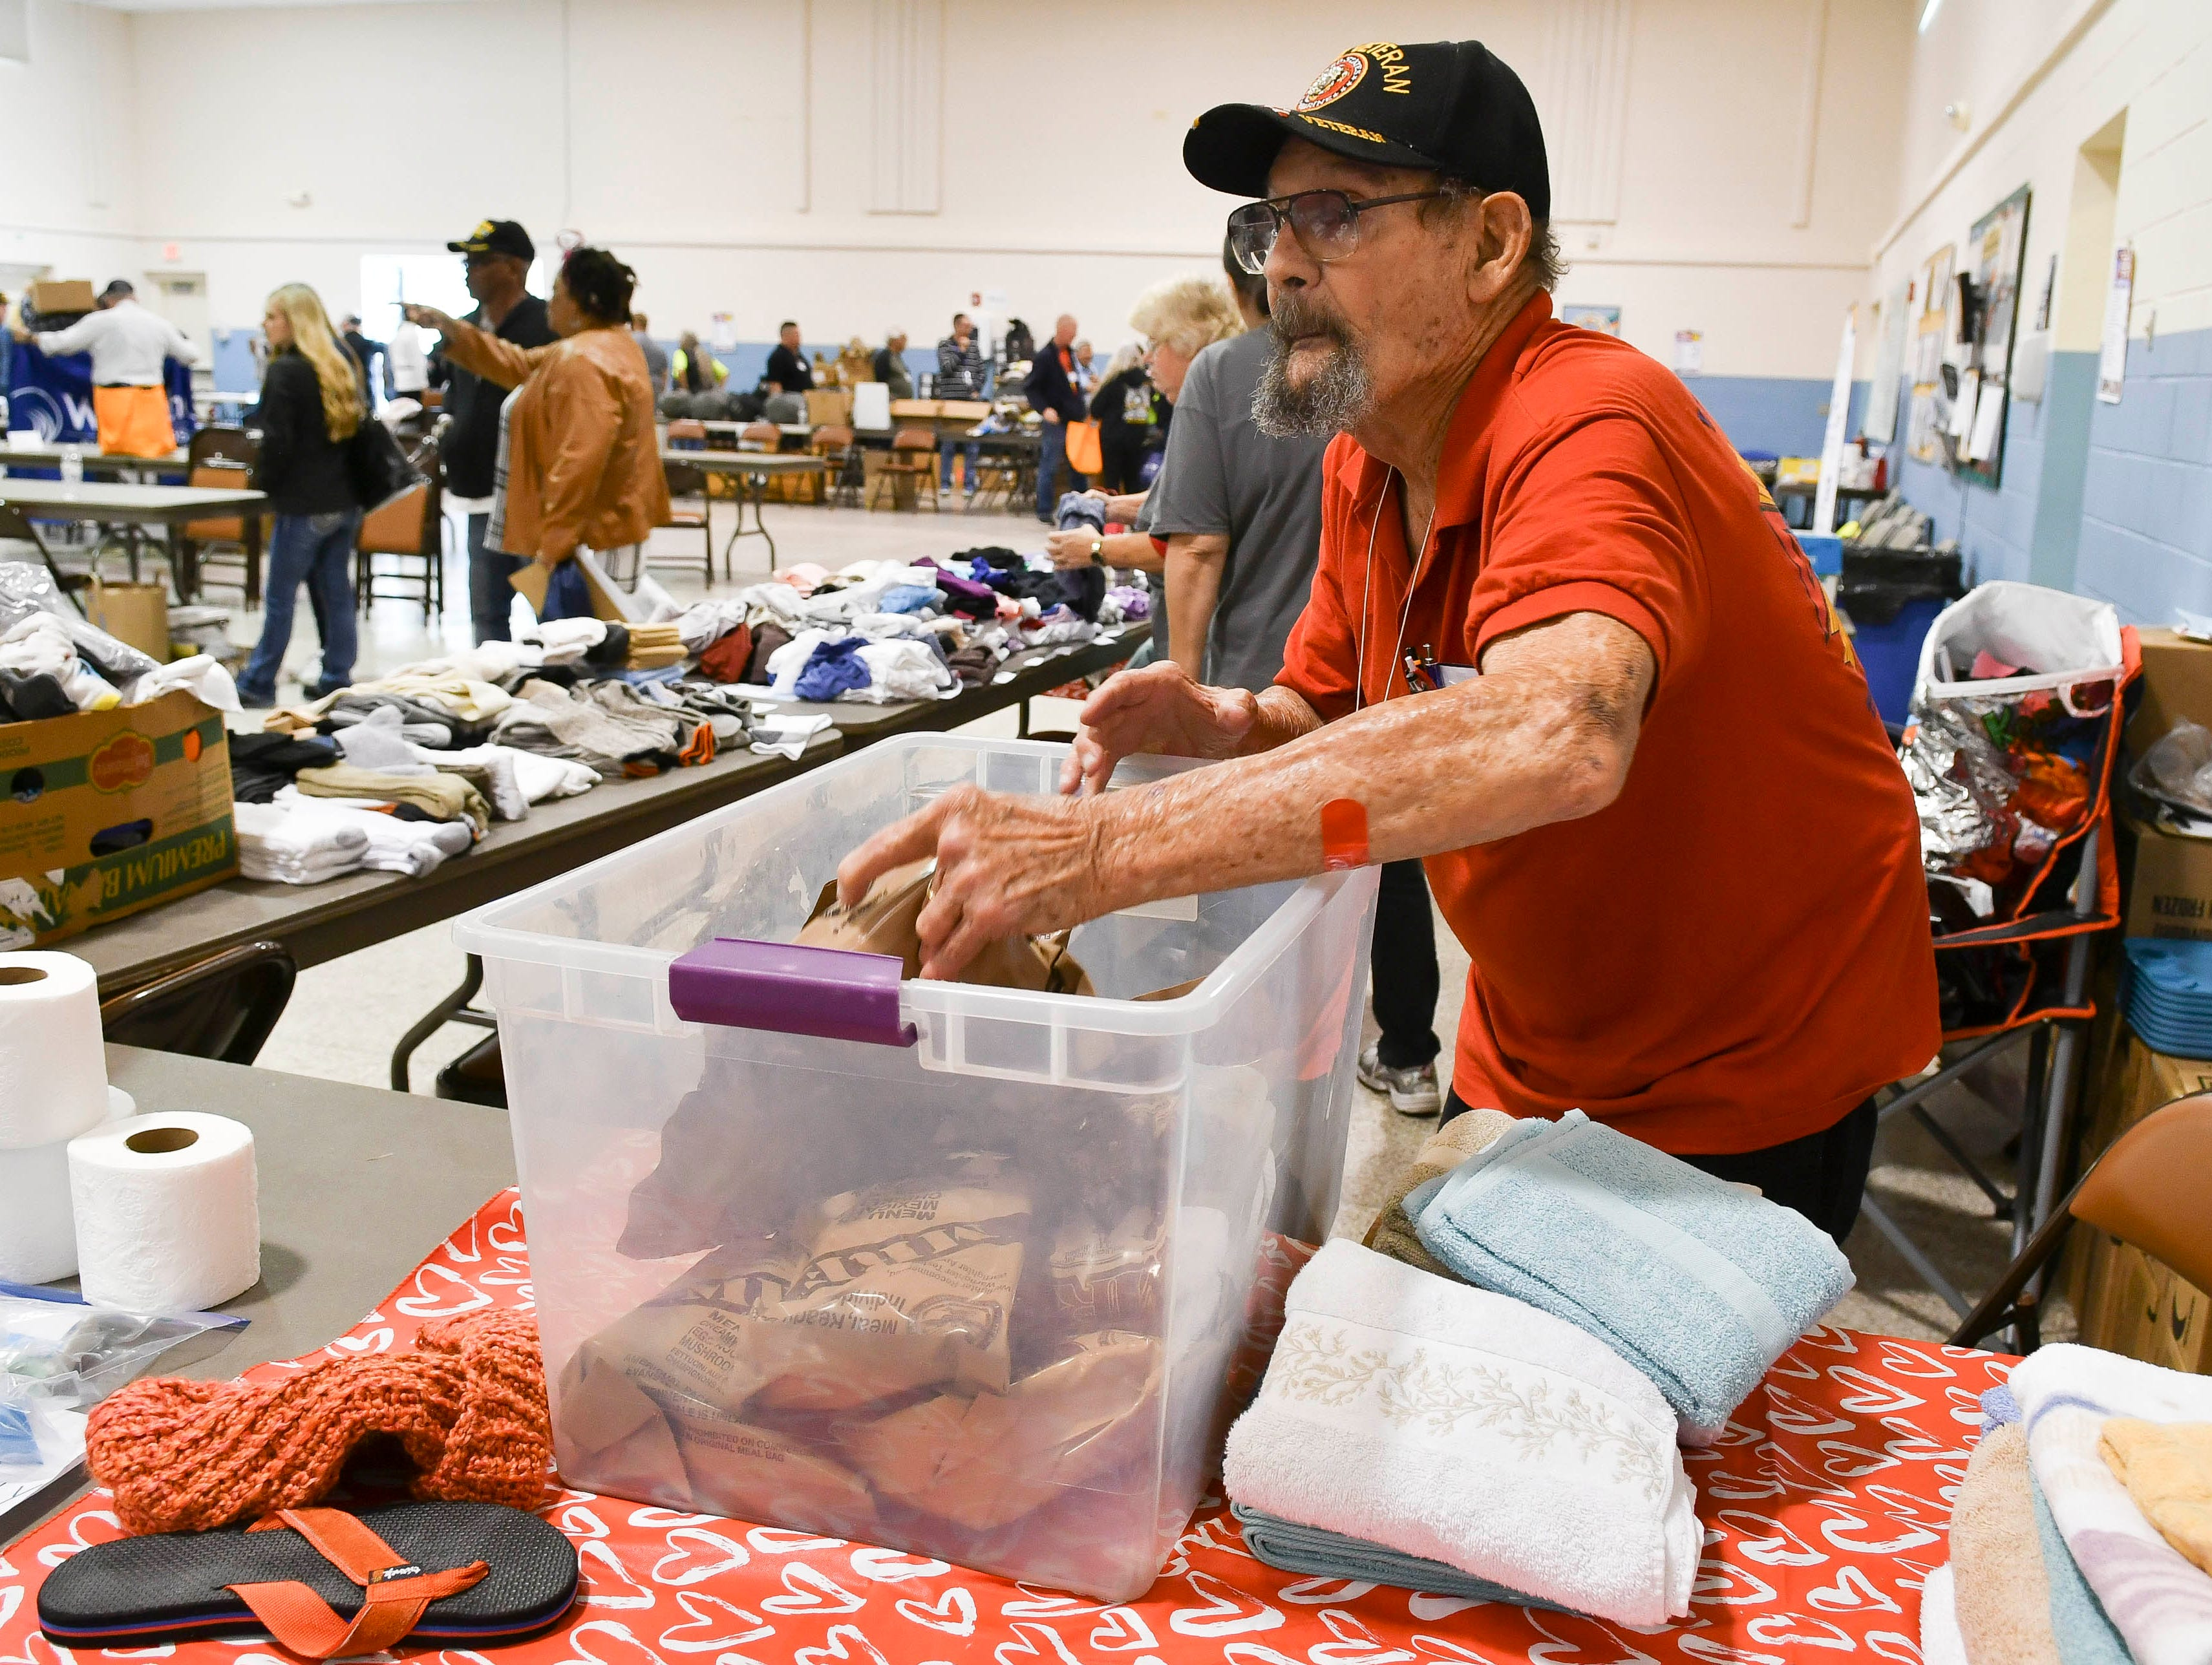 Tom Northcutt, a volunteer with the VFW Post 4228 Auxiliary helps distribute MRE's during Saturday's Stand Down for Veterans at Cocoa Armory.